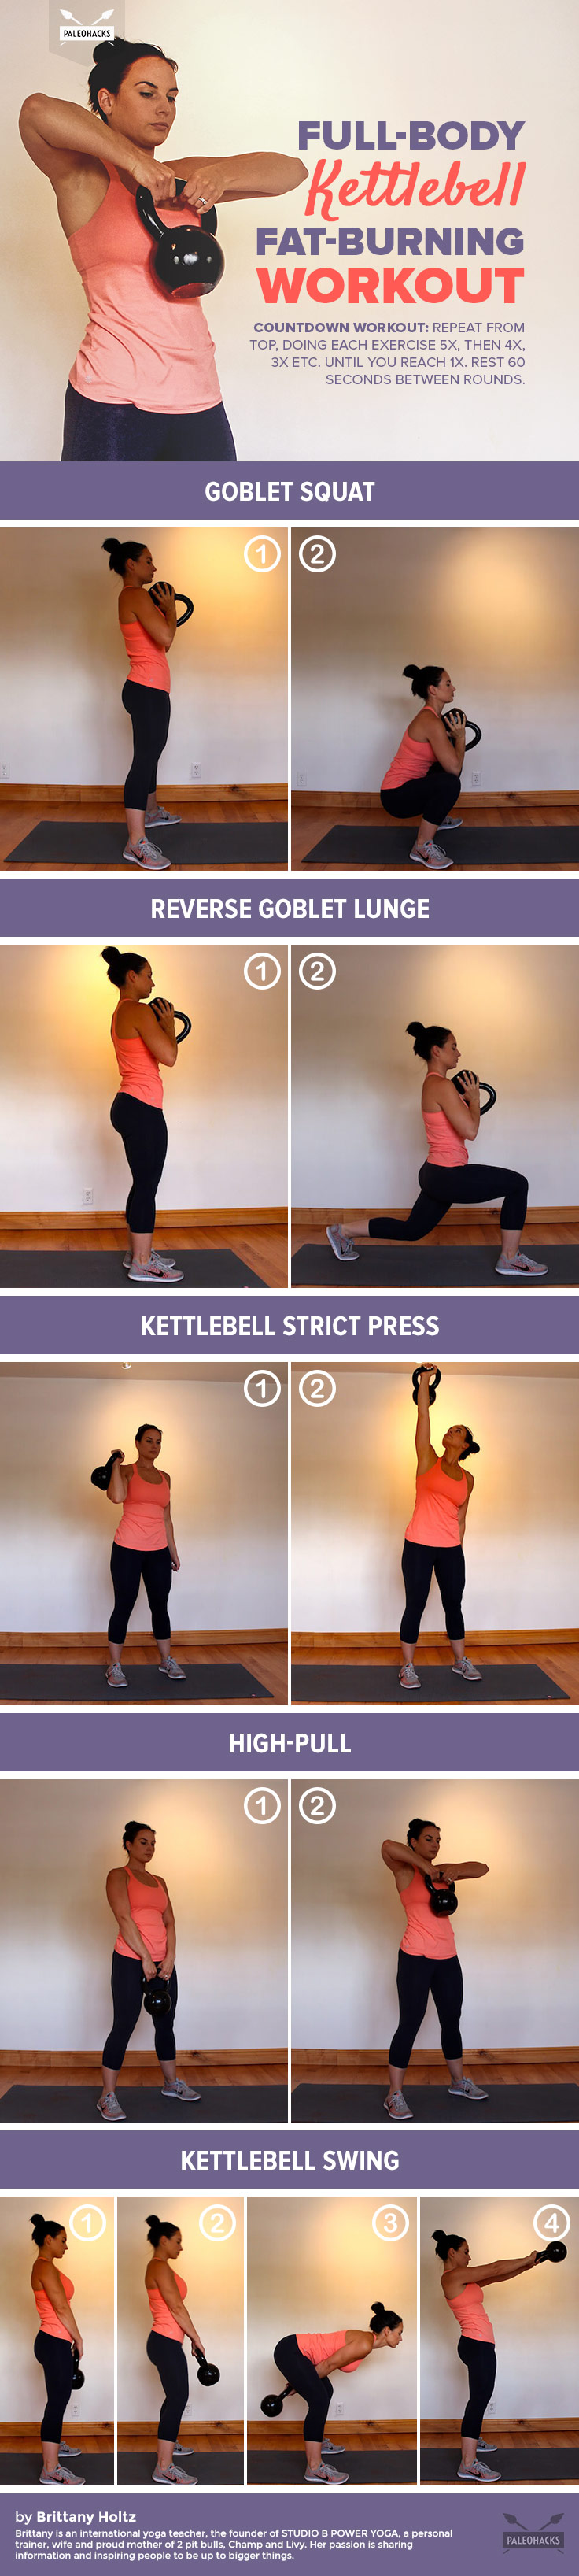 full-body-kettlebell-fat-burning-workout-info